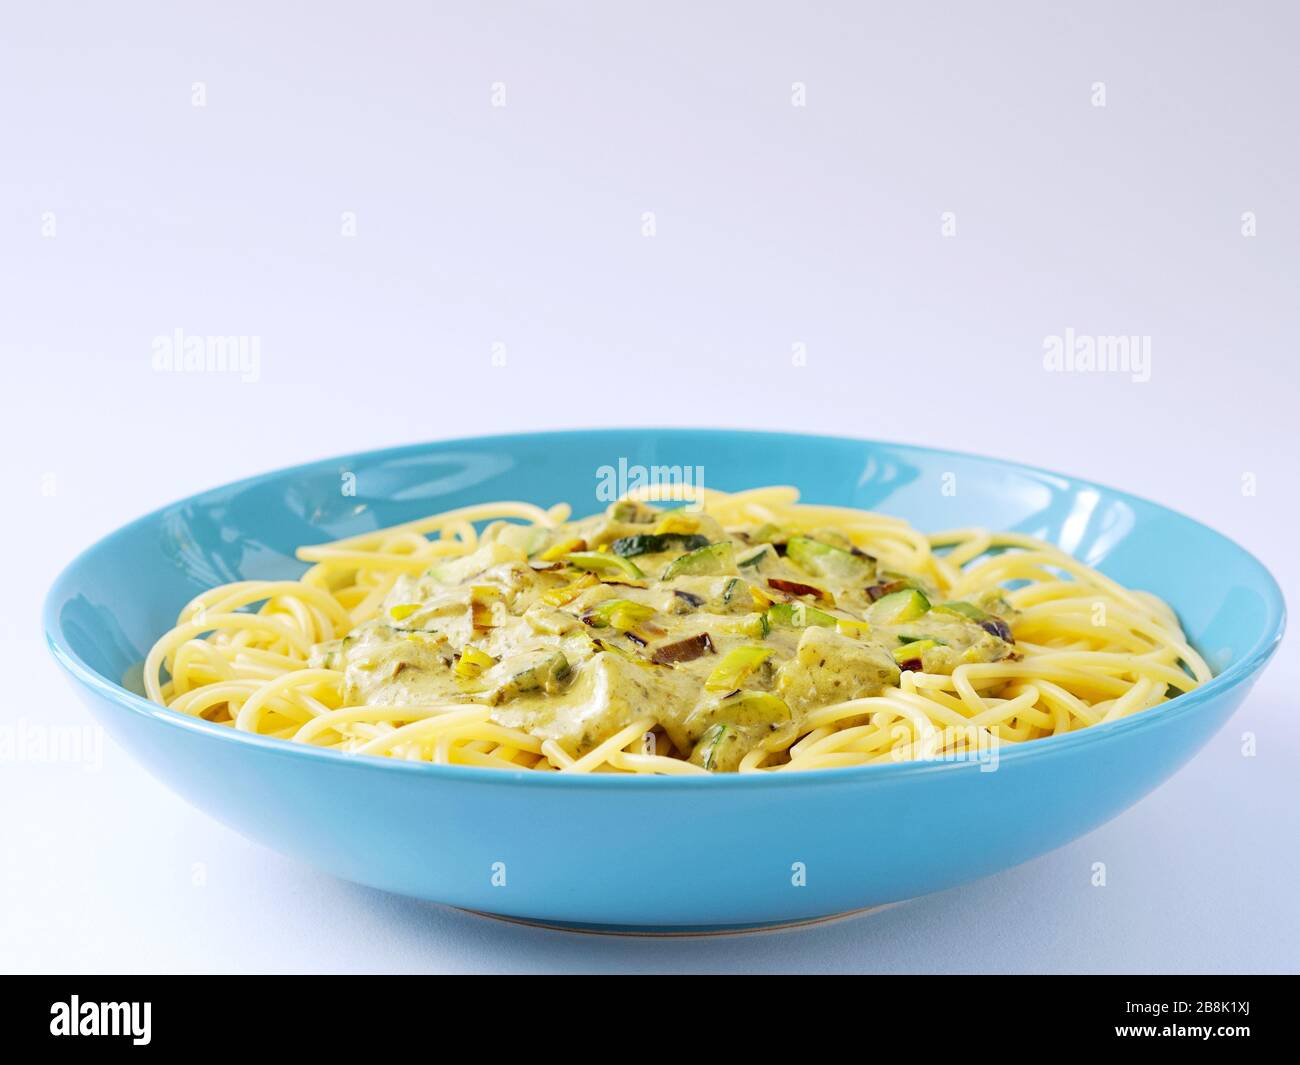 Spaghetti with a cream sauce with zucchini and leek  in a light blue plate on a white background. Stock Photo